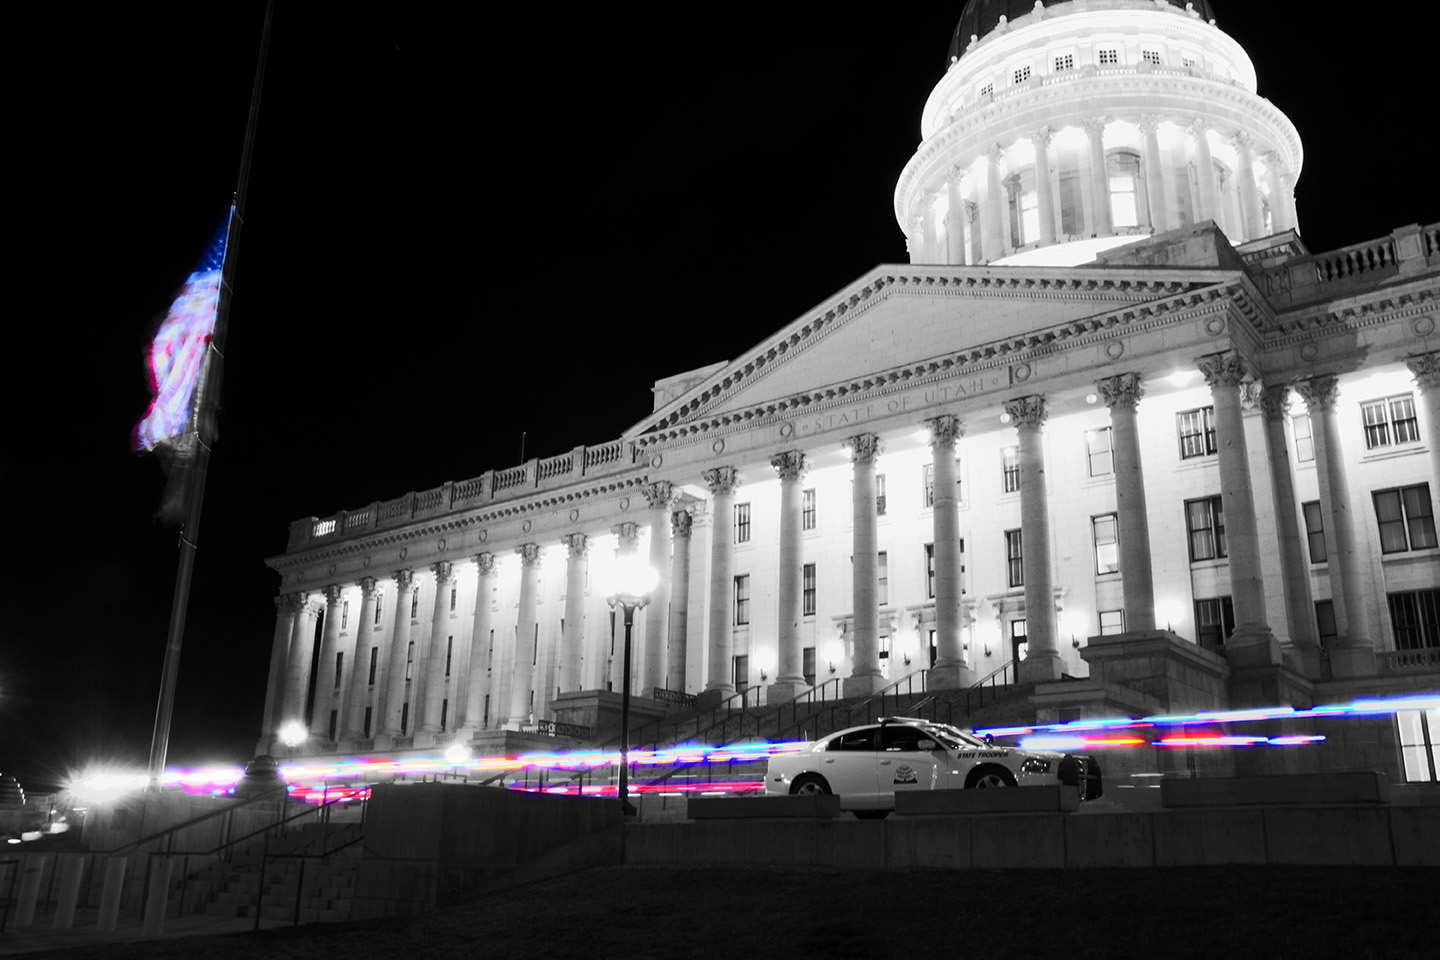 Night time view of the state capitol with trooper cars out front.